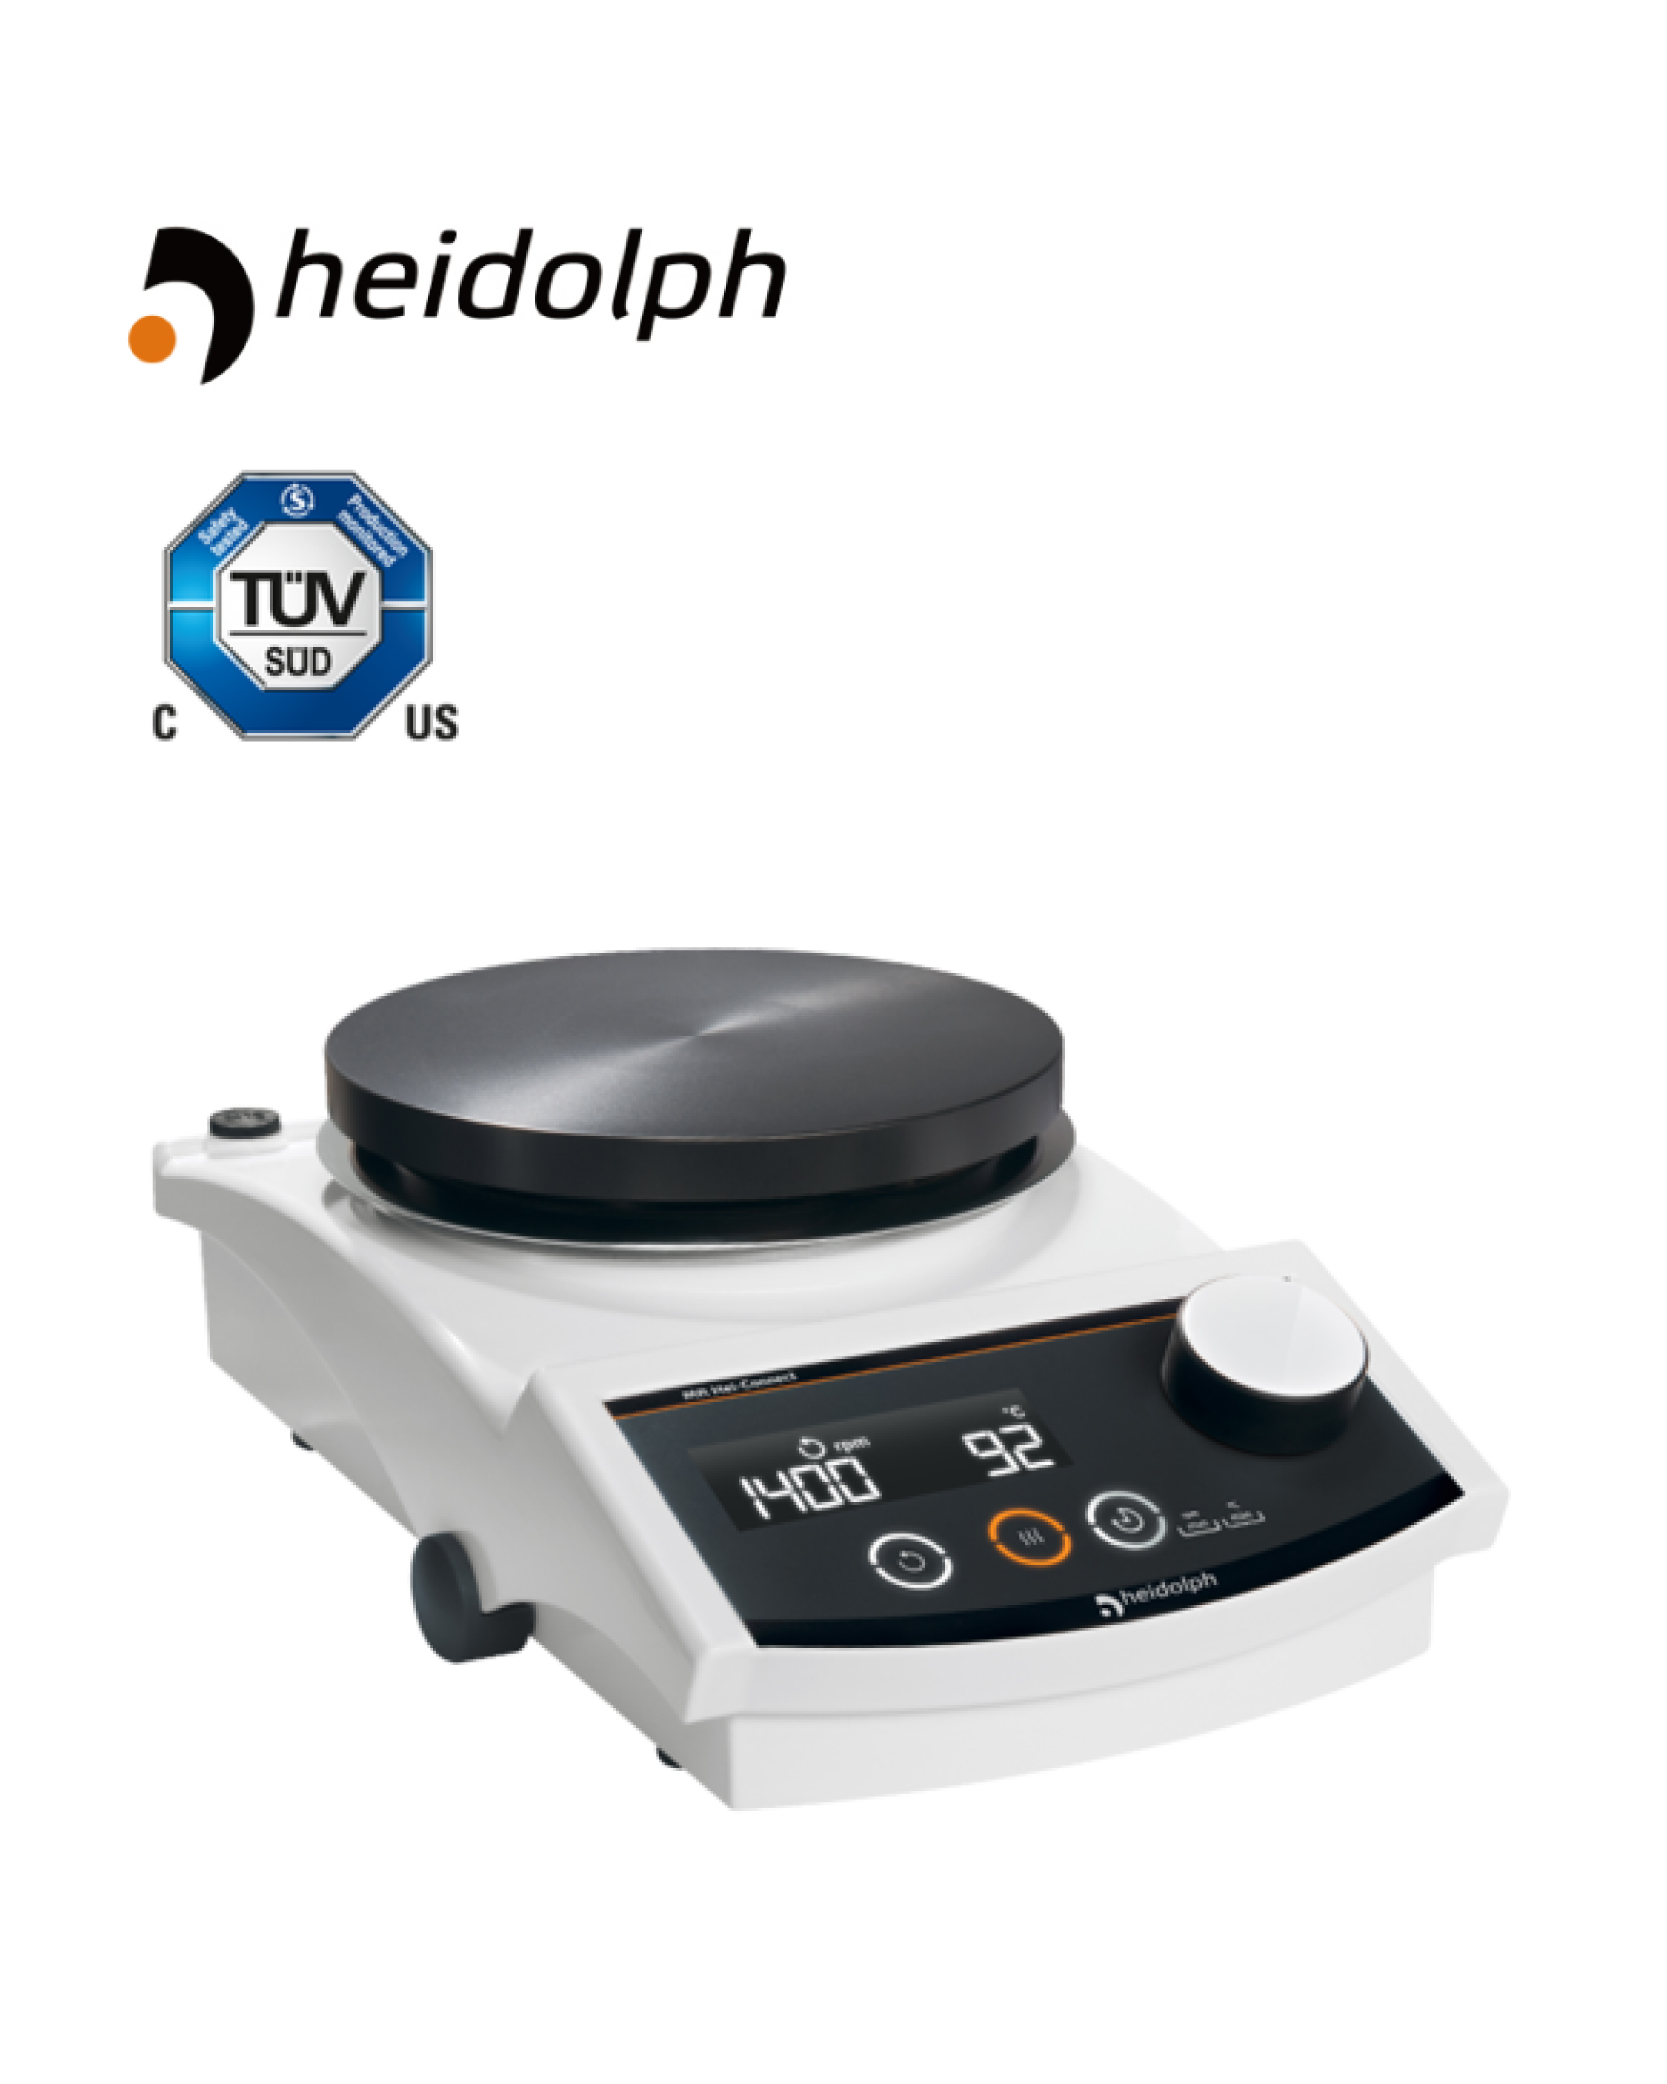 Heidolph - Hei-Connect - Magnetic Stirrer(P/N: 505-40000-00)